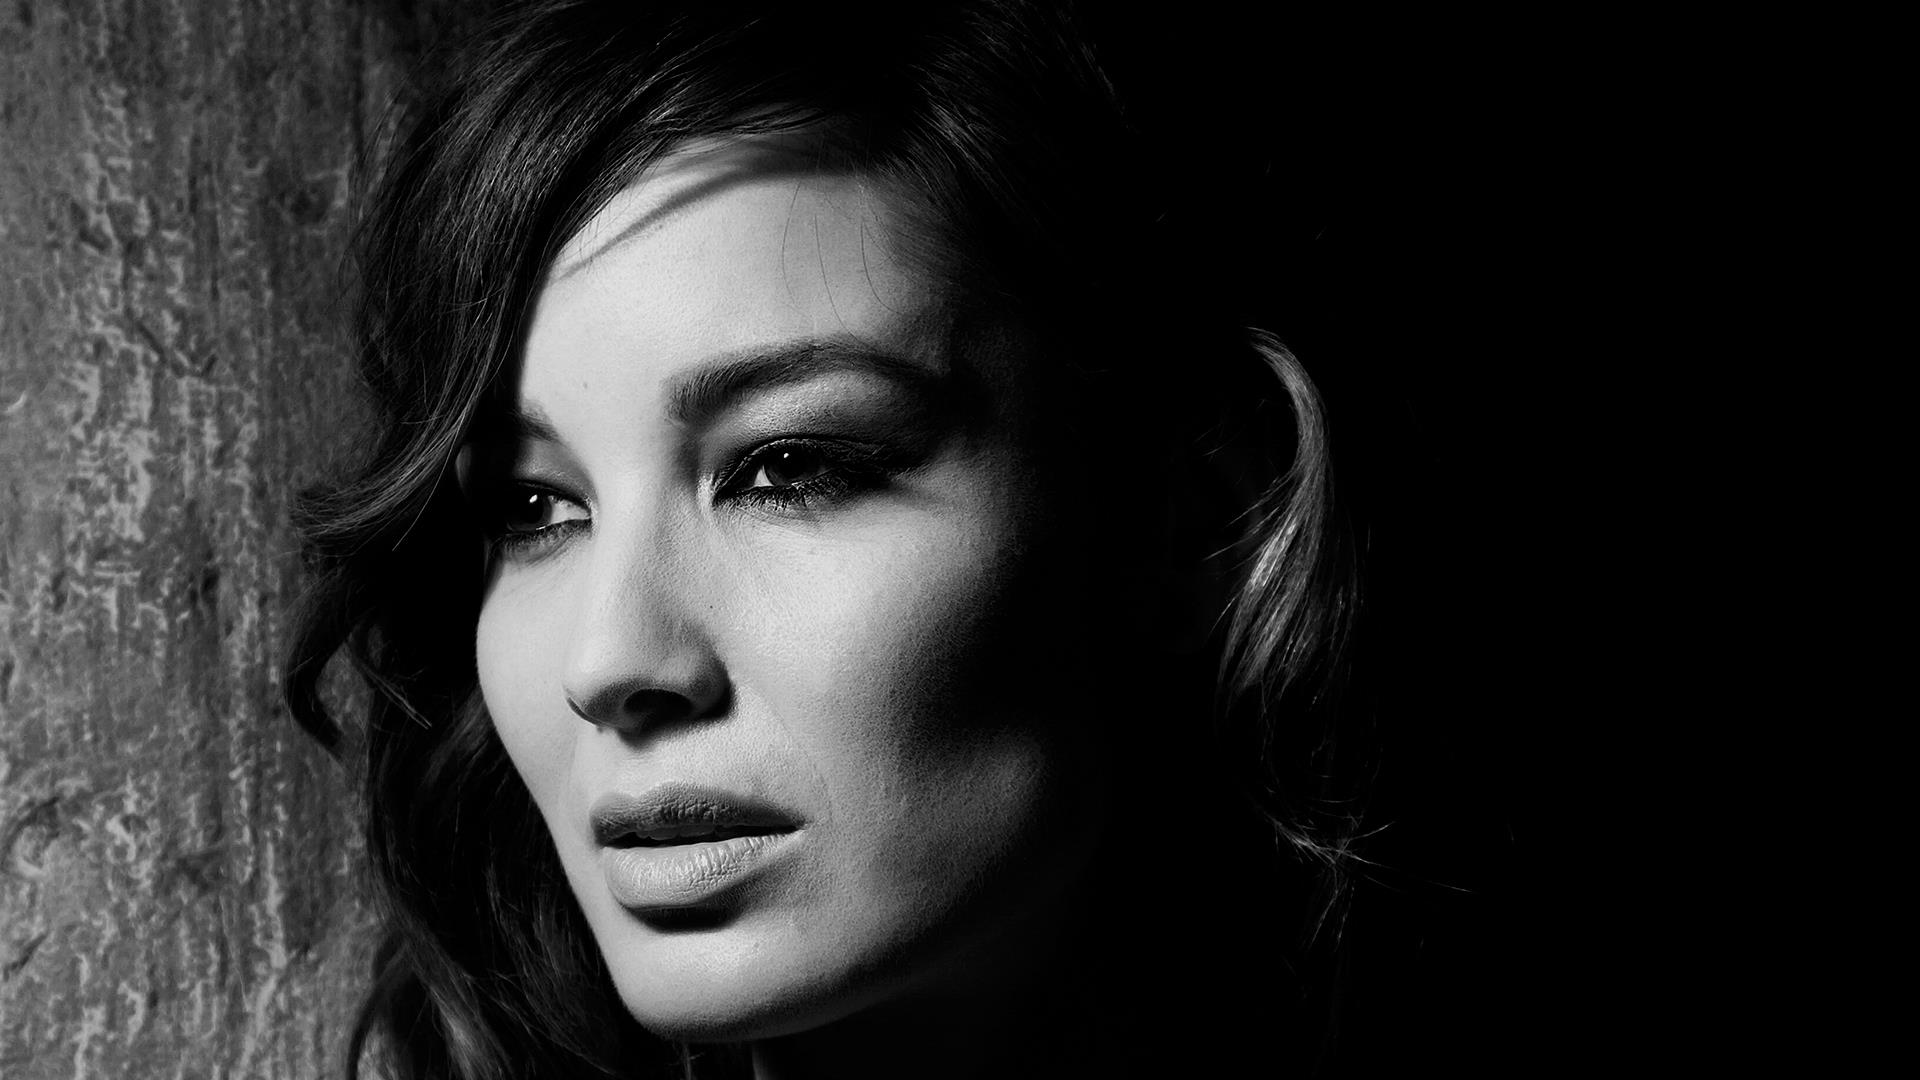 Berenice Marlohe Lookig Side Black N White Face Closeup ...